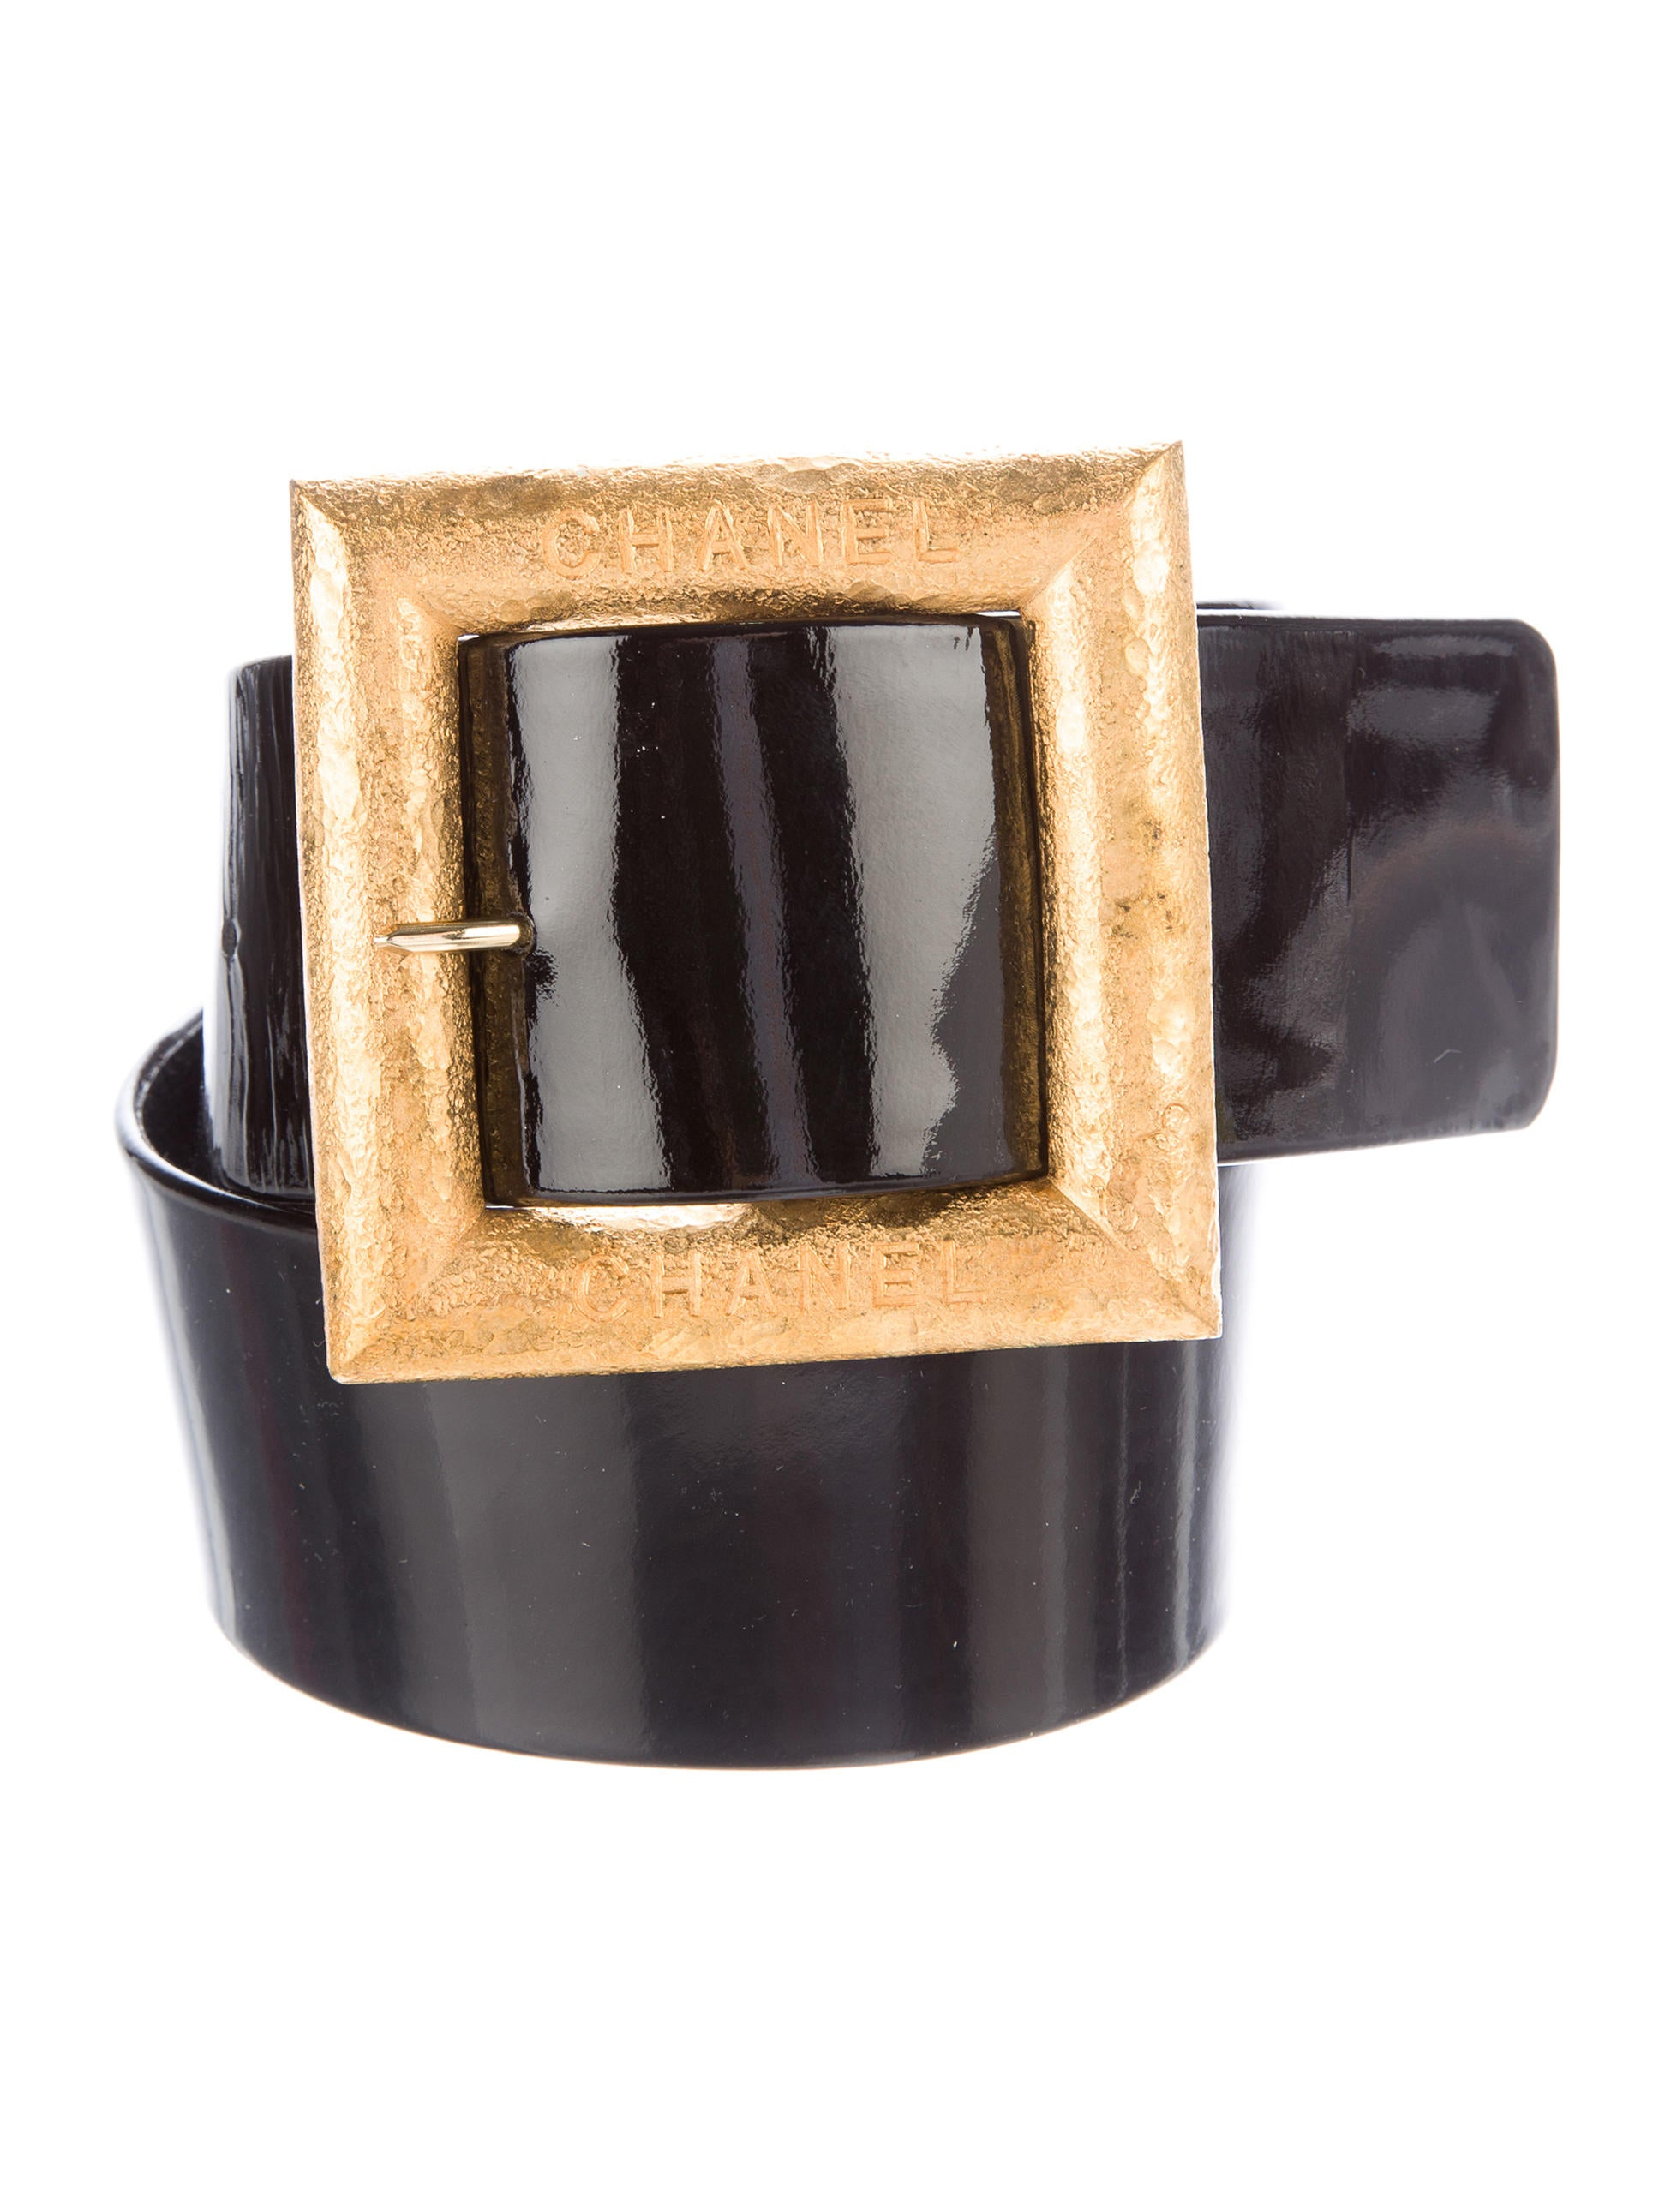 Find great deals on eBay for patent leather belt. Shop with confidence.